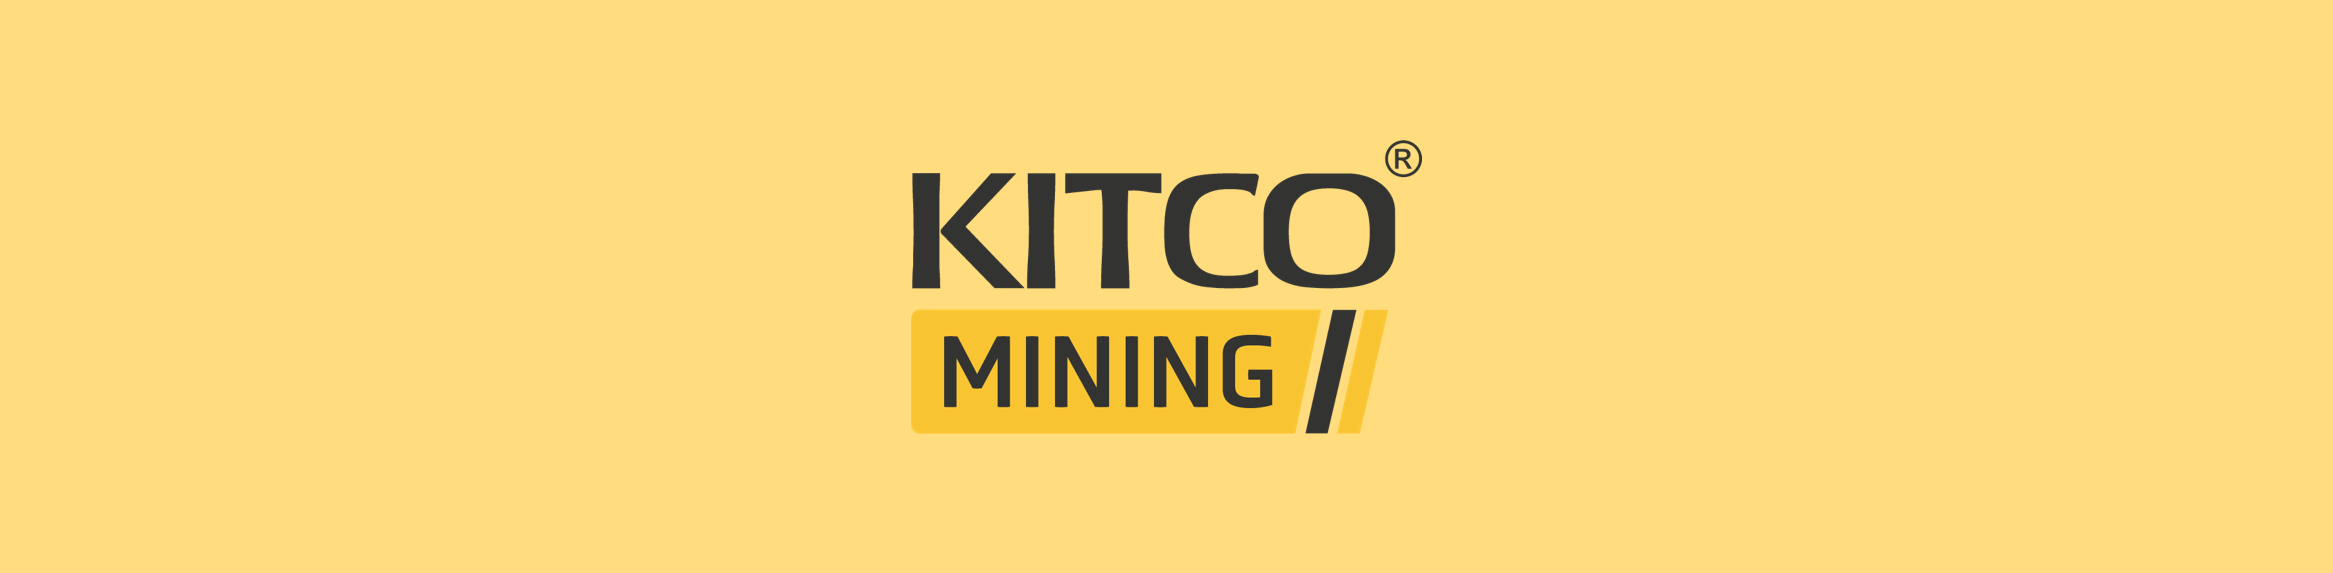 crux investor: The Best Mining Resources for Investors - Kitco mining